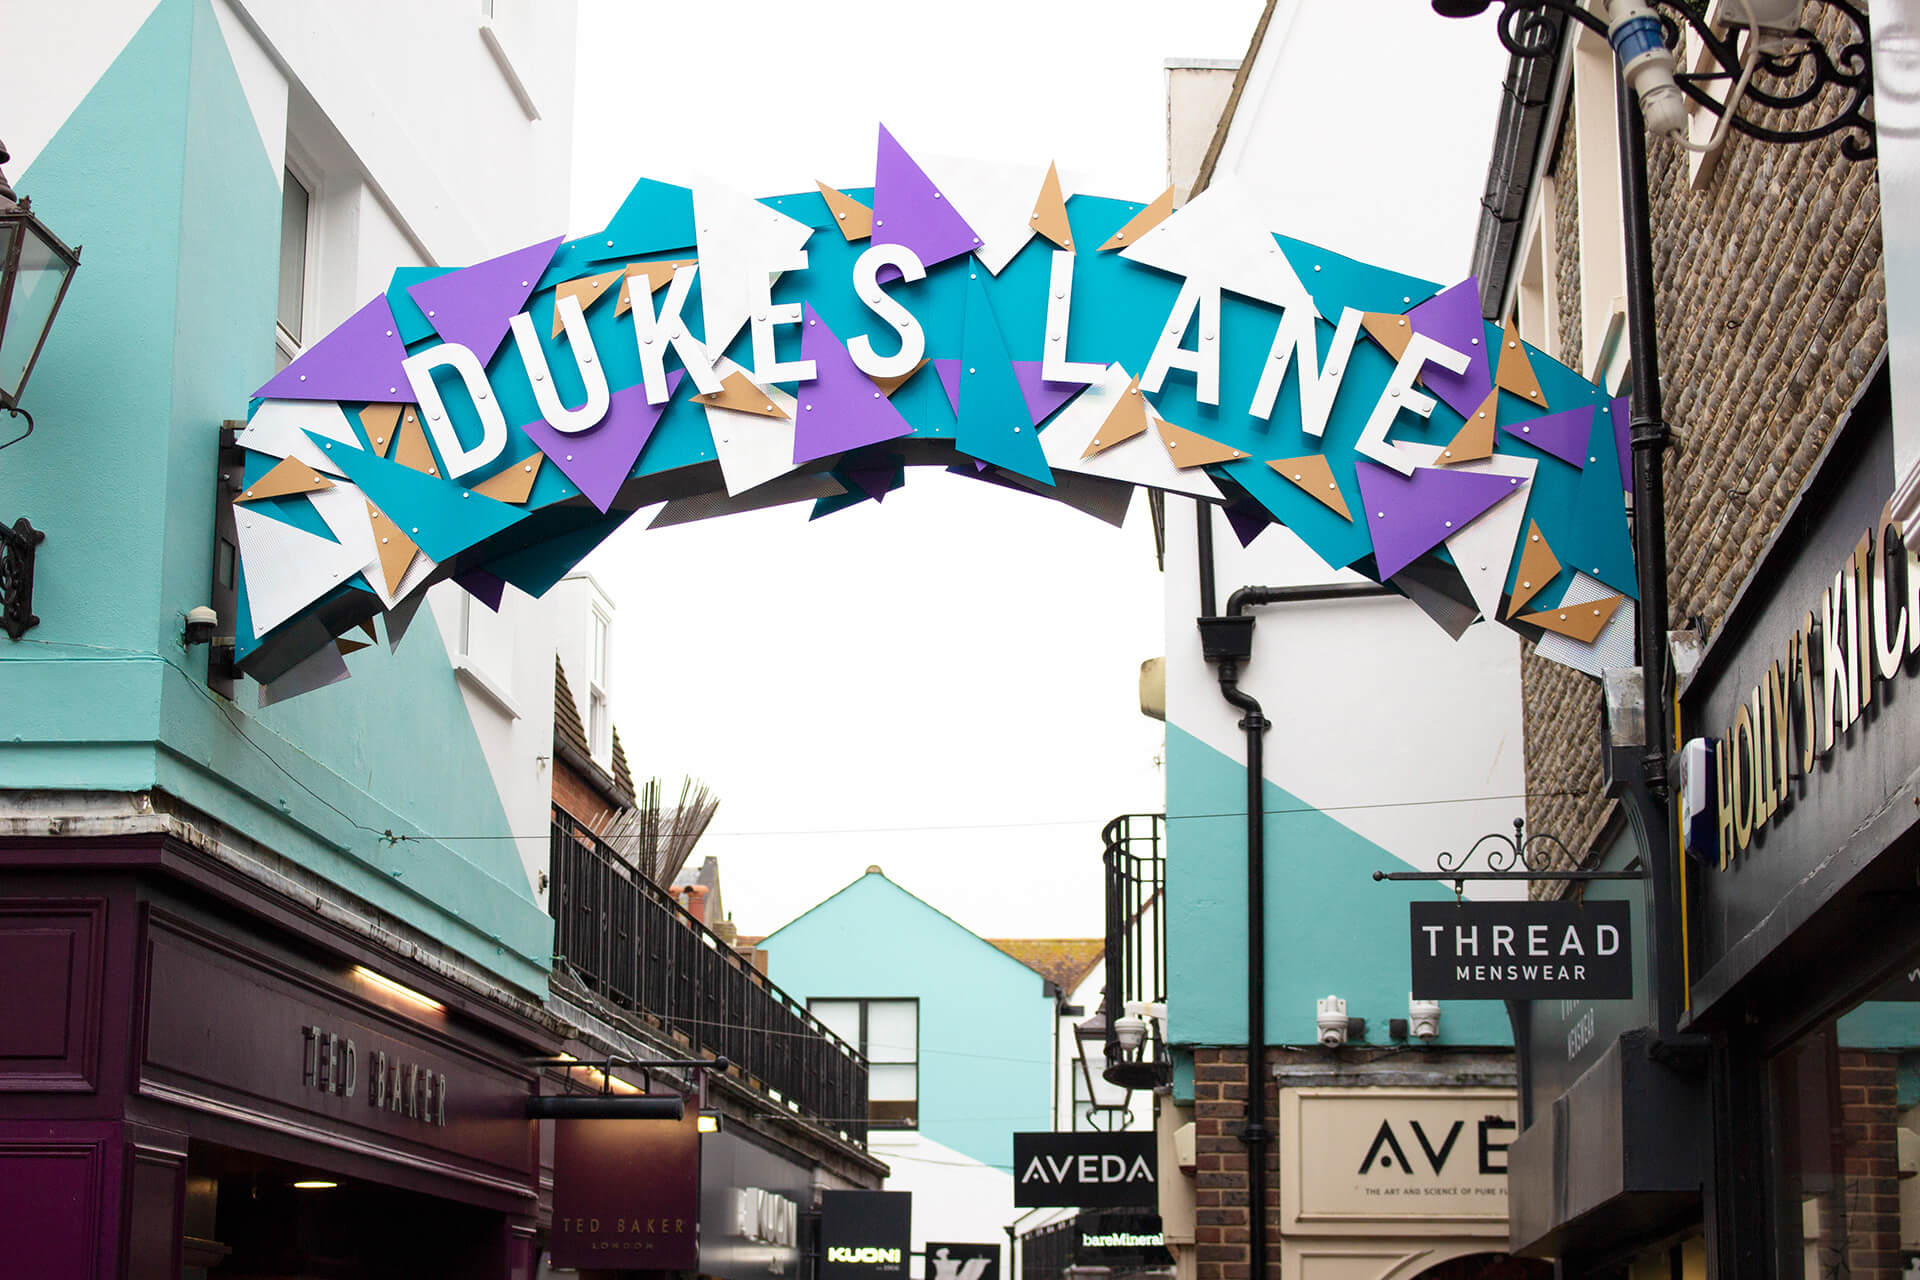 Dukes Lane, Brighton - Christmas shopping design, The Lanes, retail